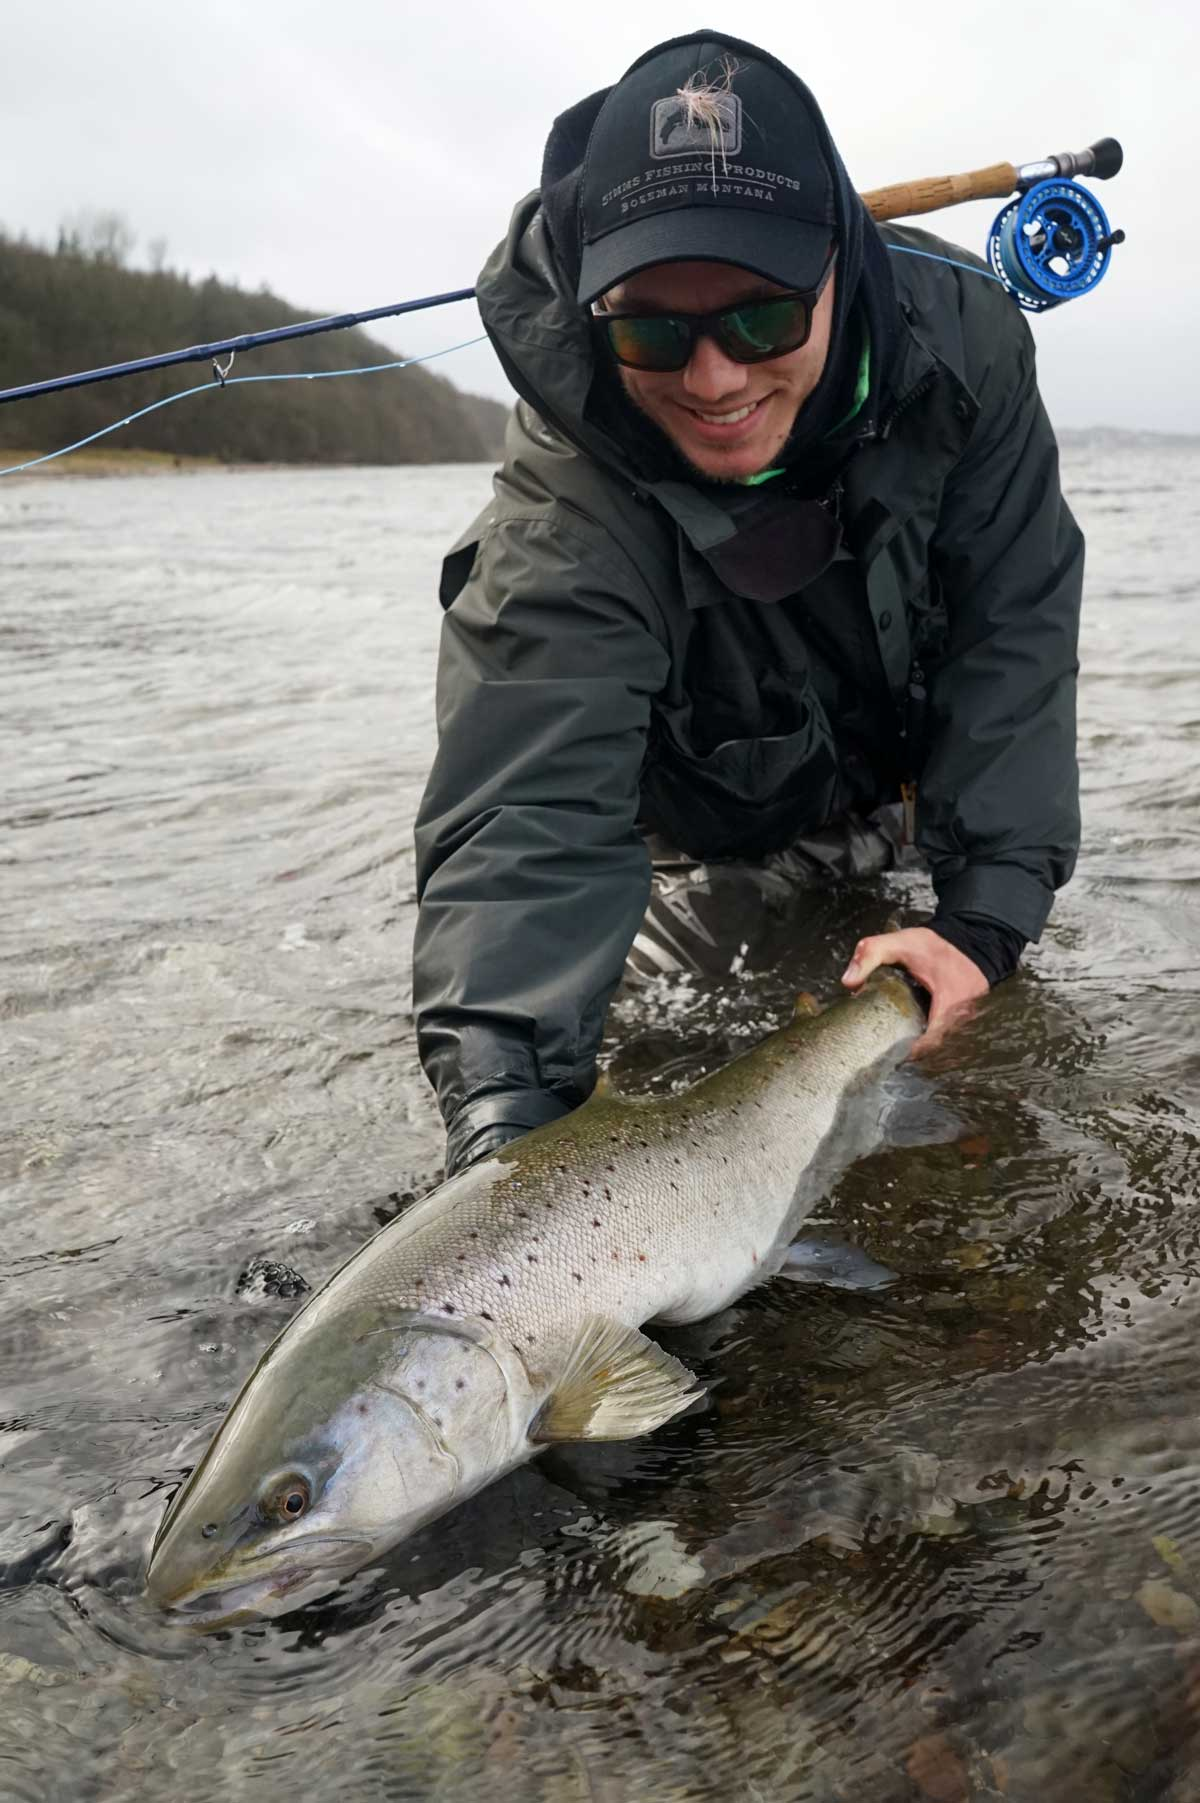 Fly Fishing For Sea Run Brown trout with fly rods